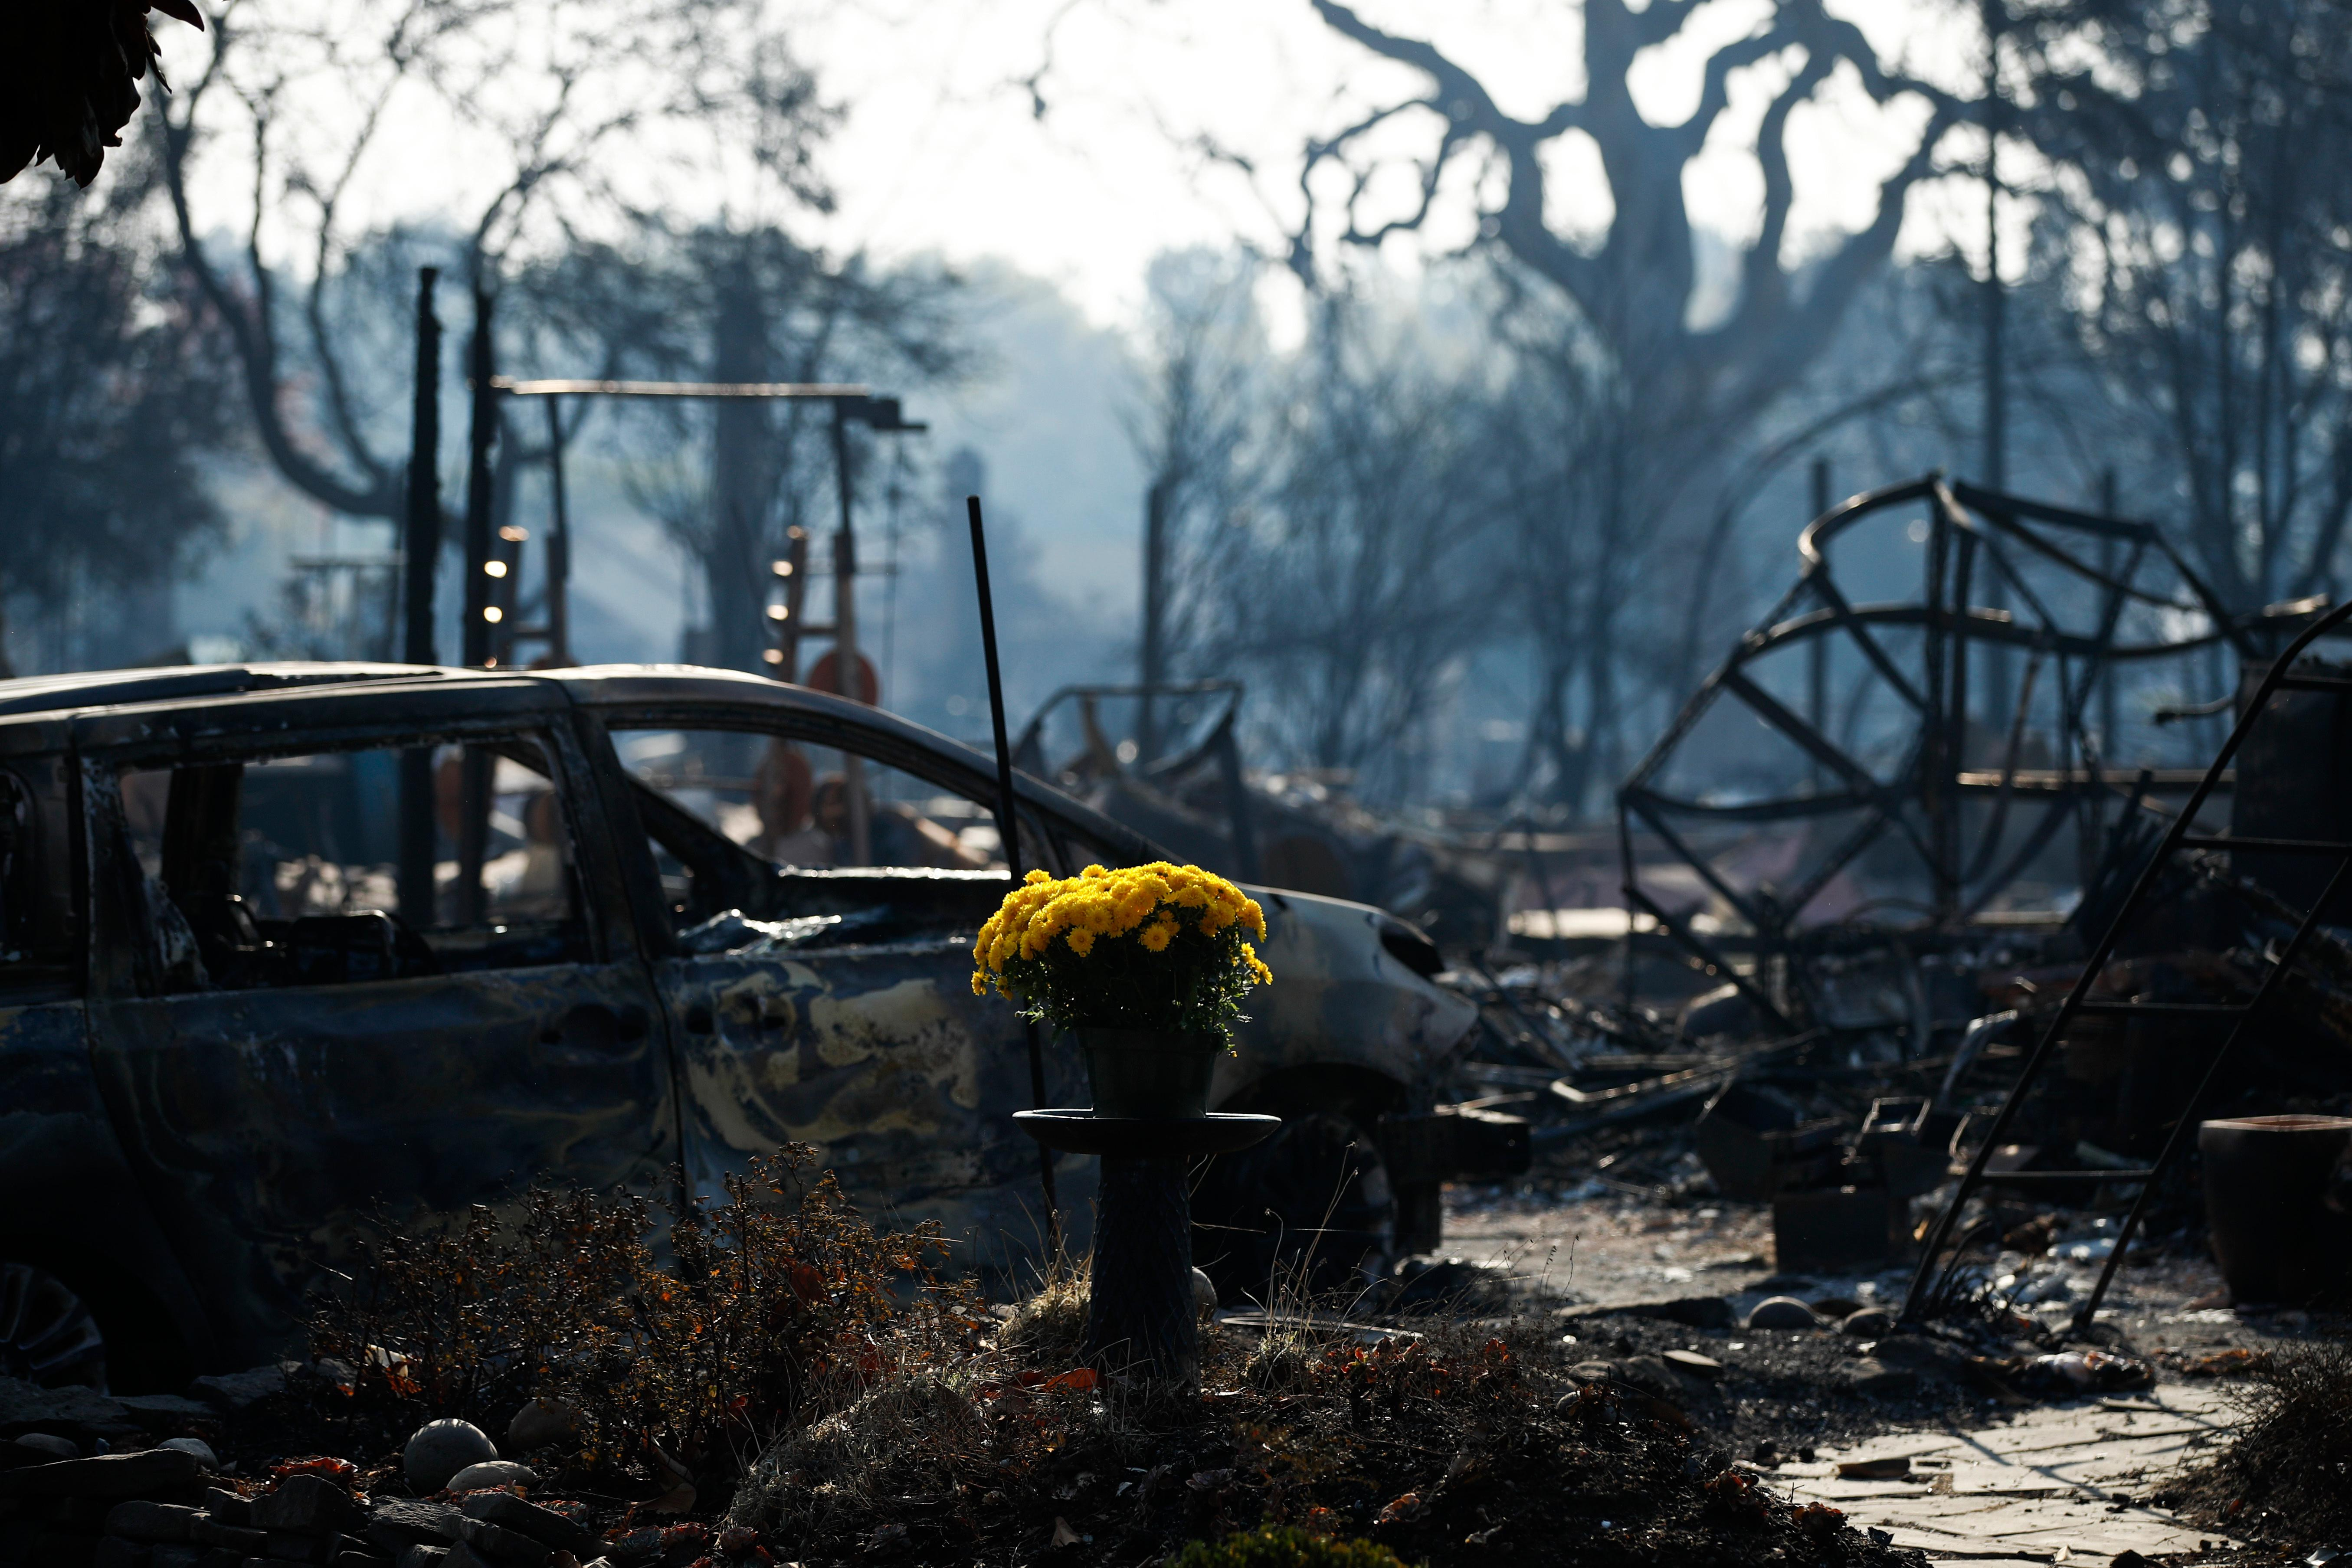 A bouquet of fresh flowers are placed, Sunday, Oct. 15, 2017, in the Coffey Park neighborhood in Santa Rosa, Calif., that was devastated by a wildfire. A state fire spokesman says it appears firefighters are making good progress on deadly wildfires that started a week earlier, devastating wine country and other parts of rural Northern California. (AP Photo/Jae C. Hong)